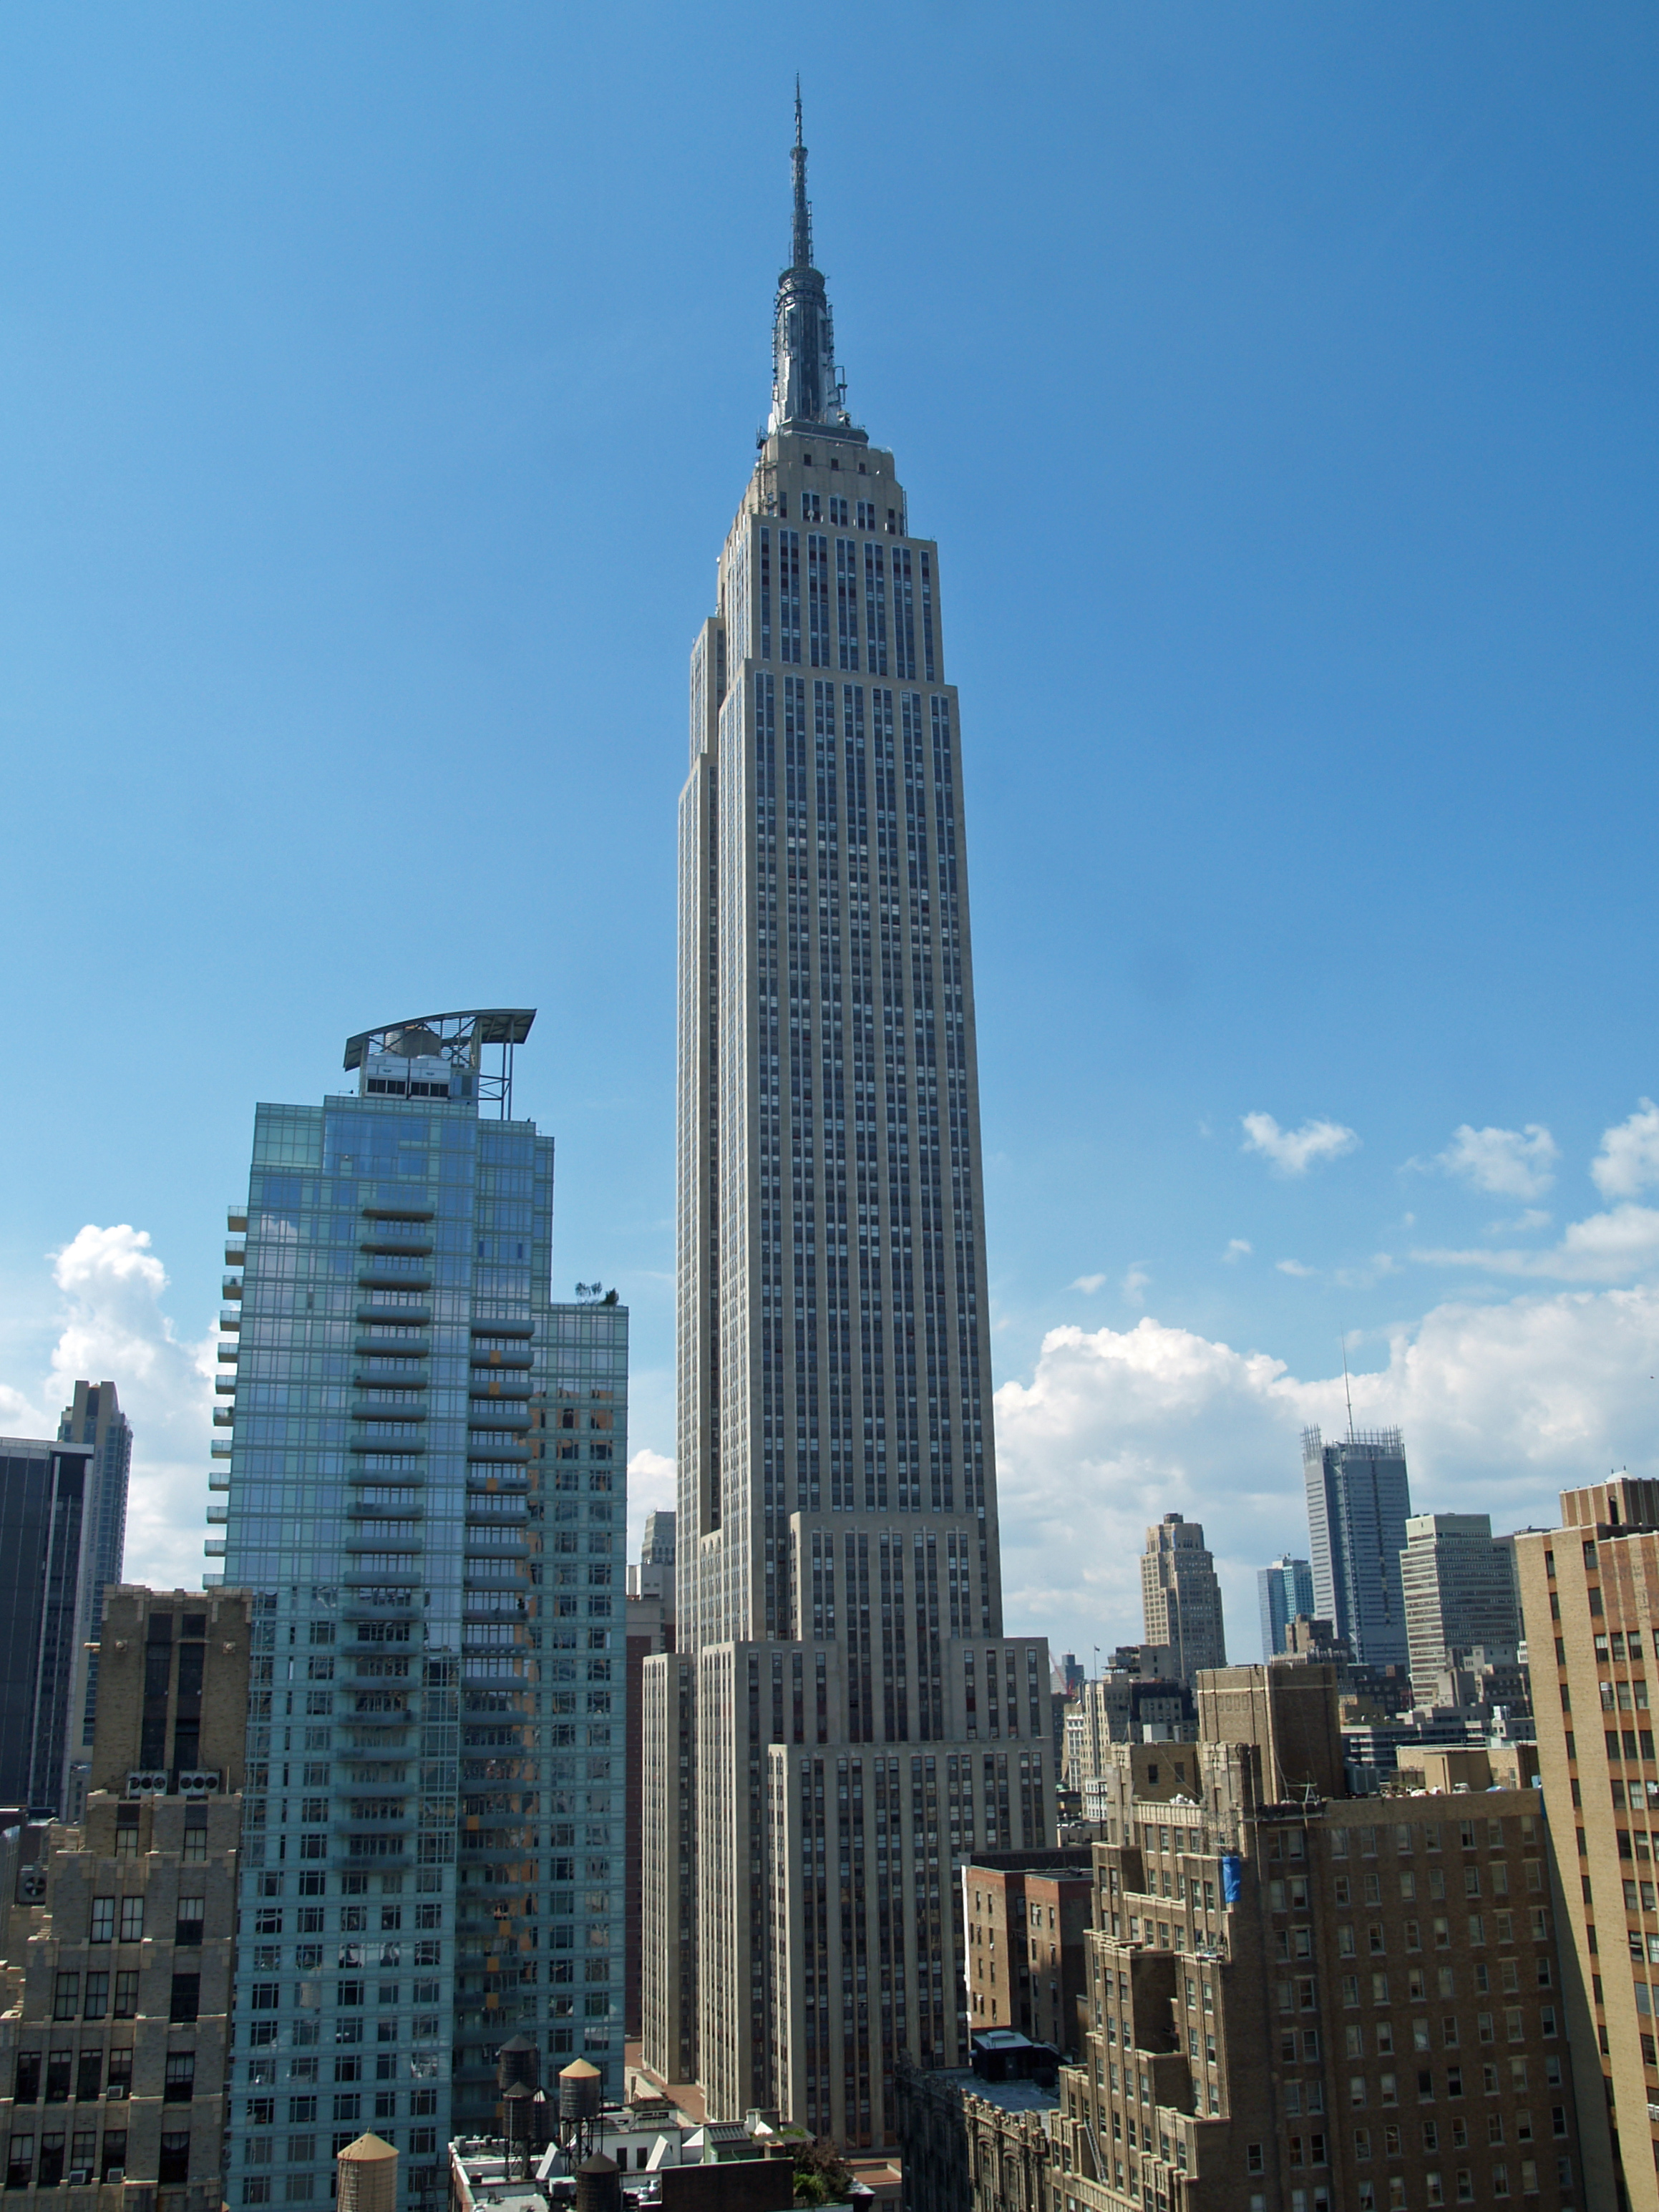 Empire State Building - Wikipedia, the free encyclopedia